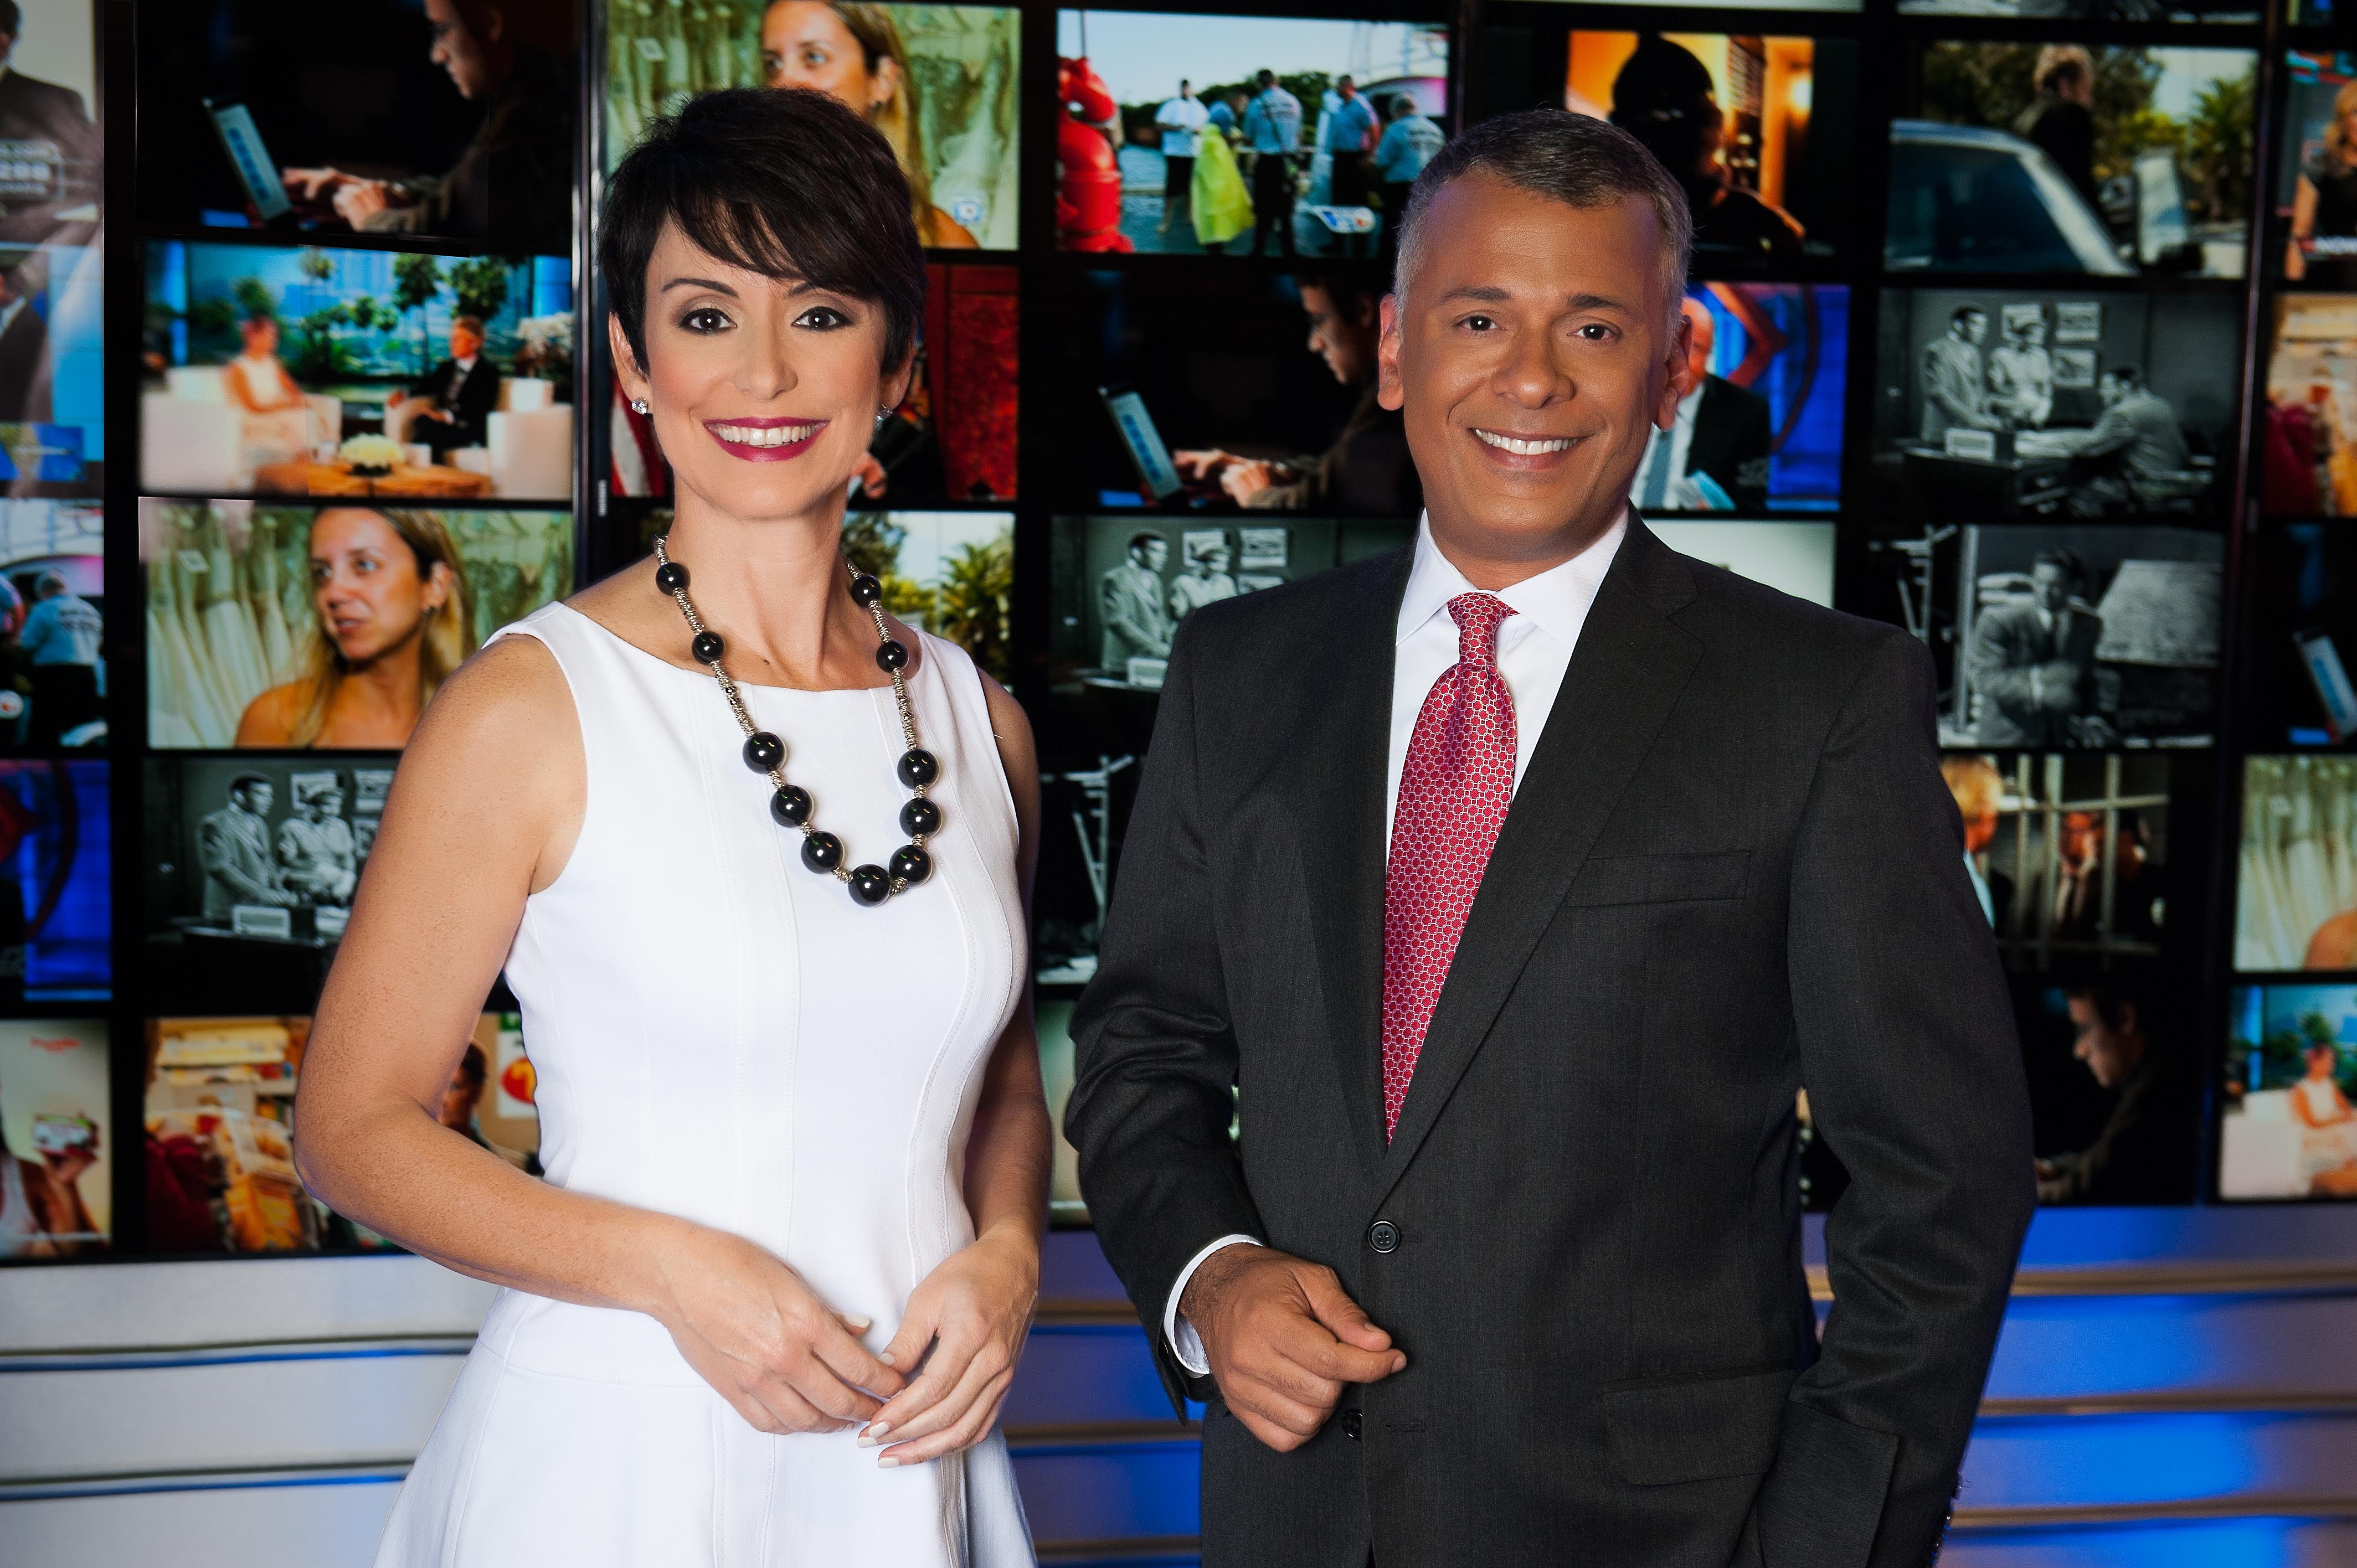 WSVN - Newsroom - New Set - Craig and Belkys-108-Edit-Edit